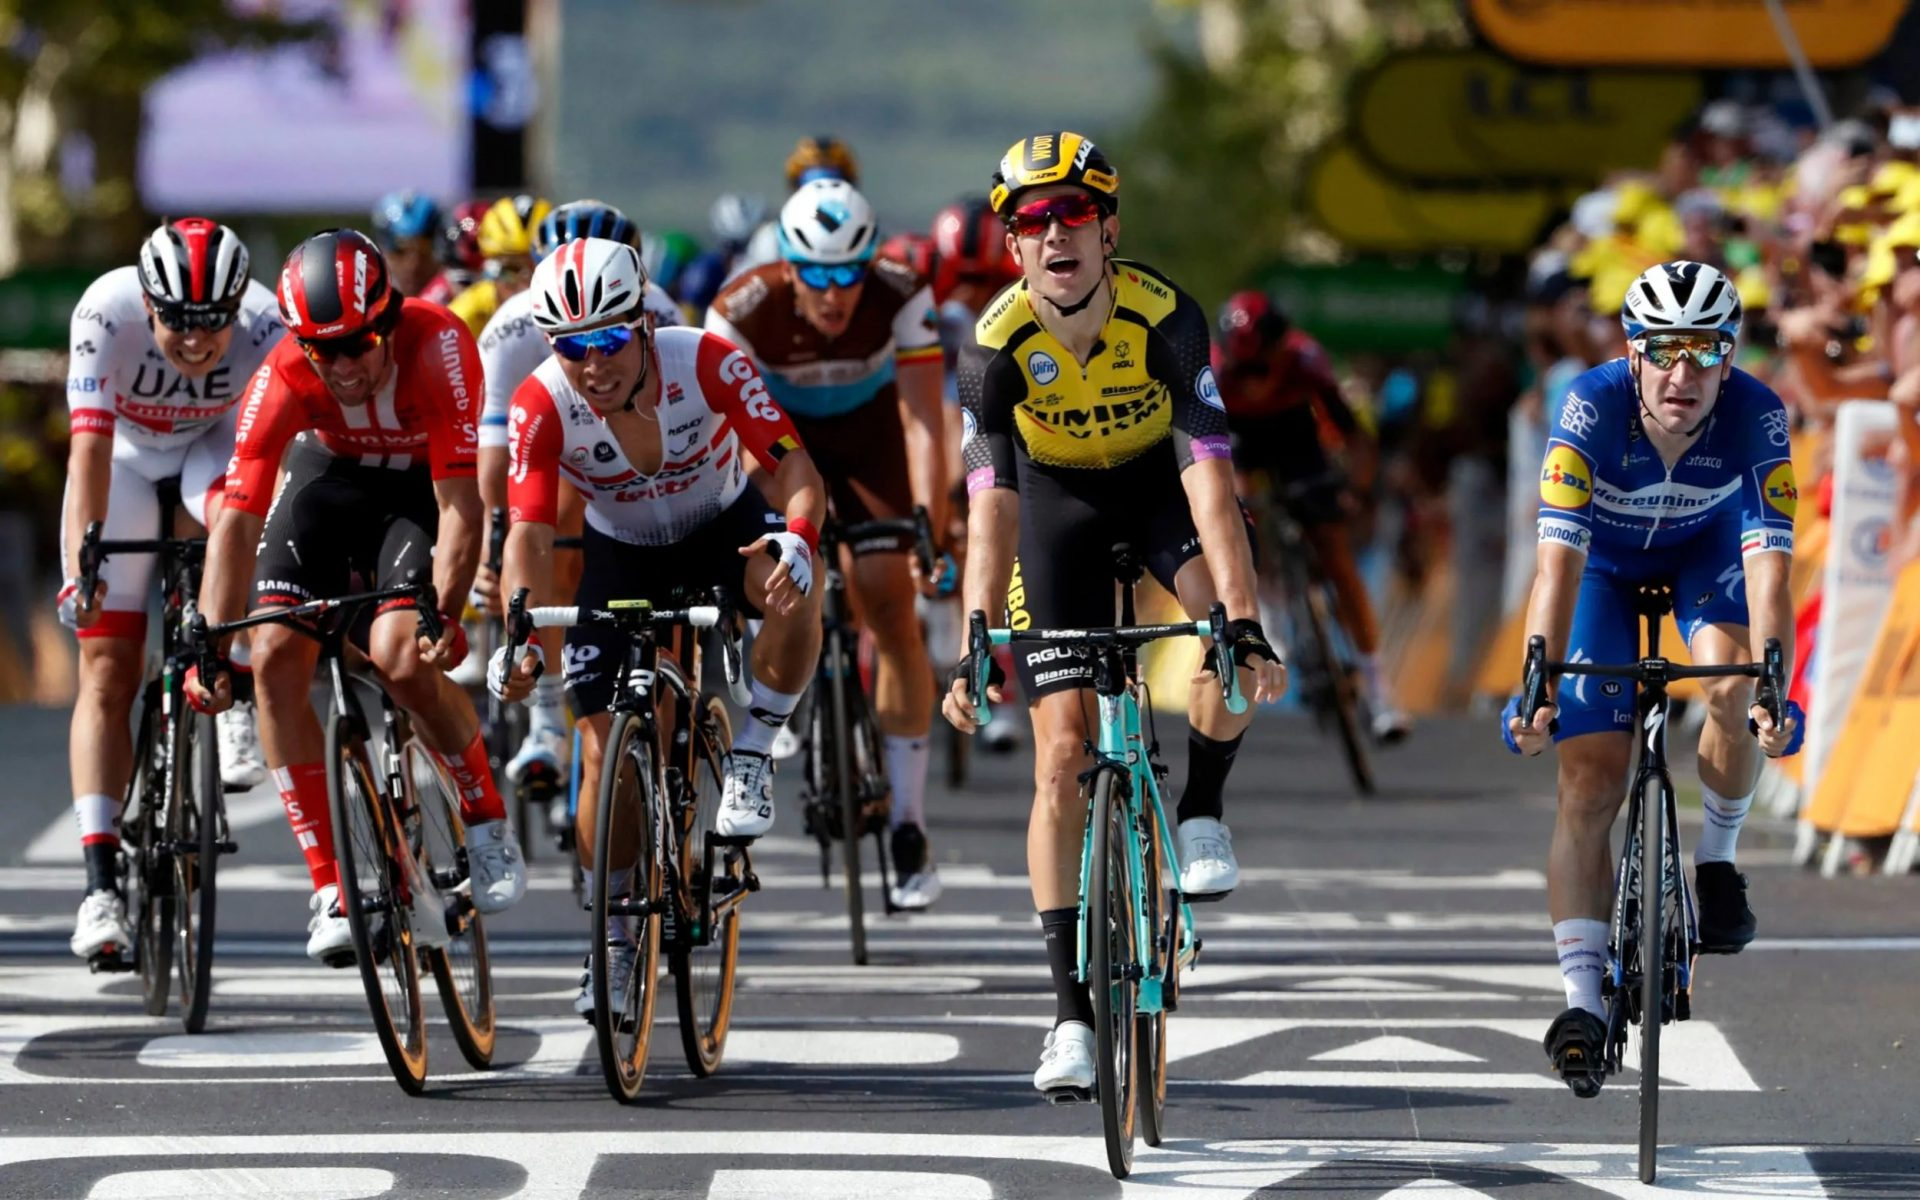 Van Aert Wins 2019 Tour de France Stage 10 and Some Big GC Contenders Lose Time 22